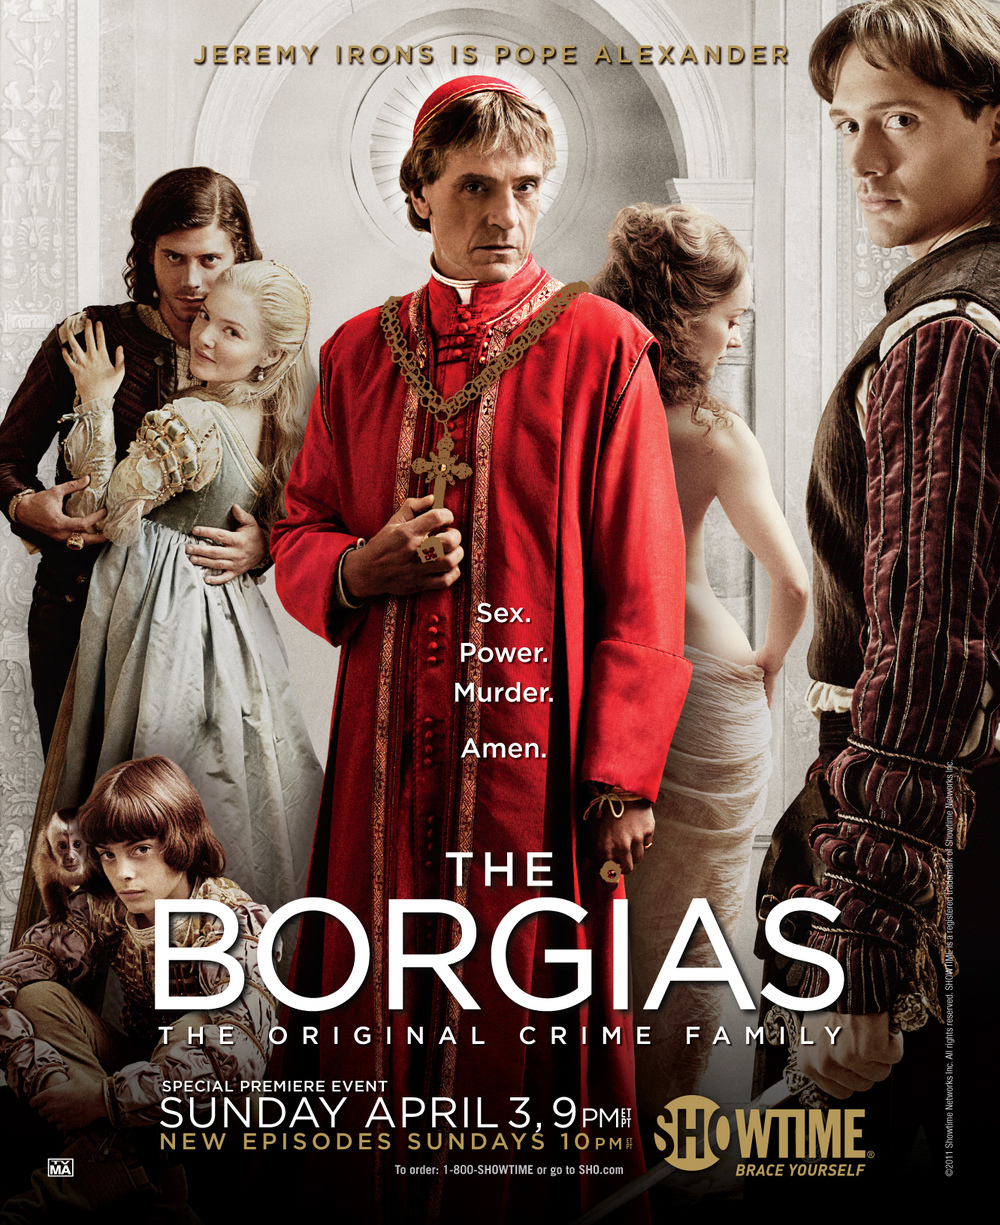 The-Borgias-Season-1-POSTER-Promo3.jpg